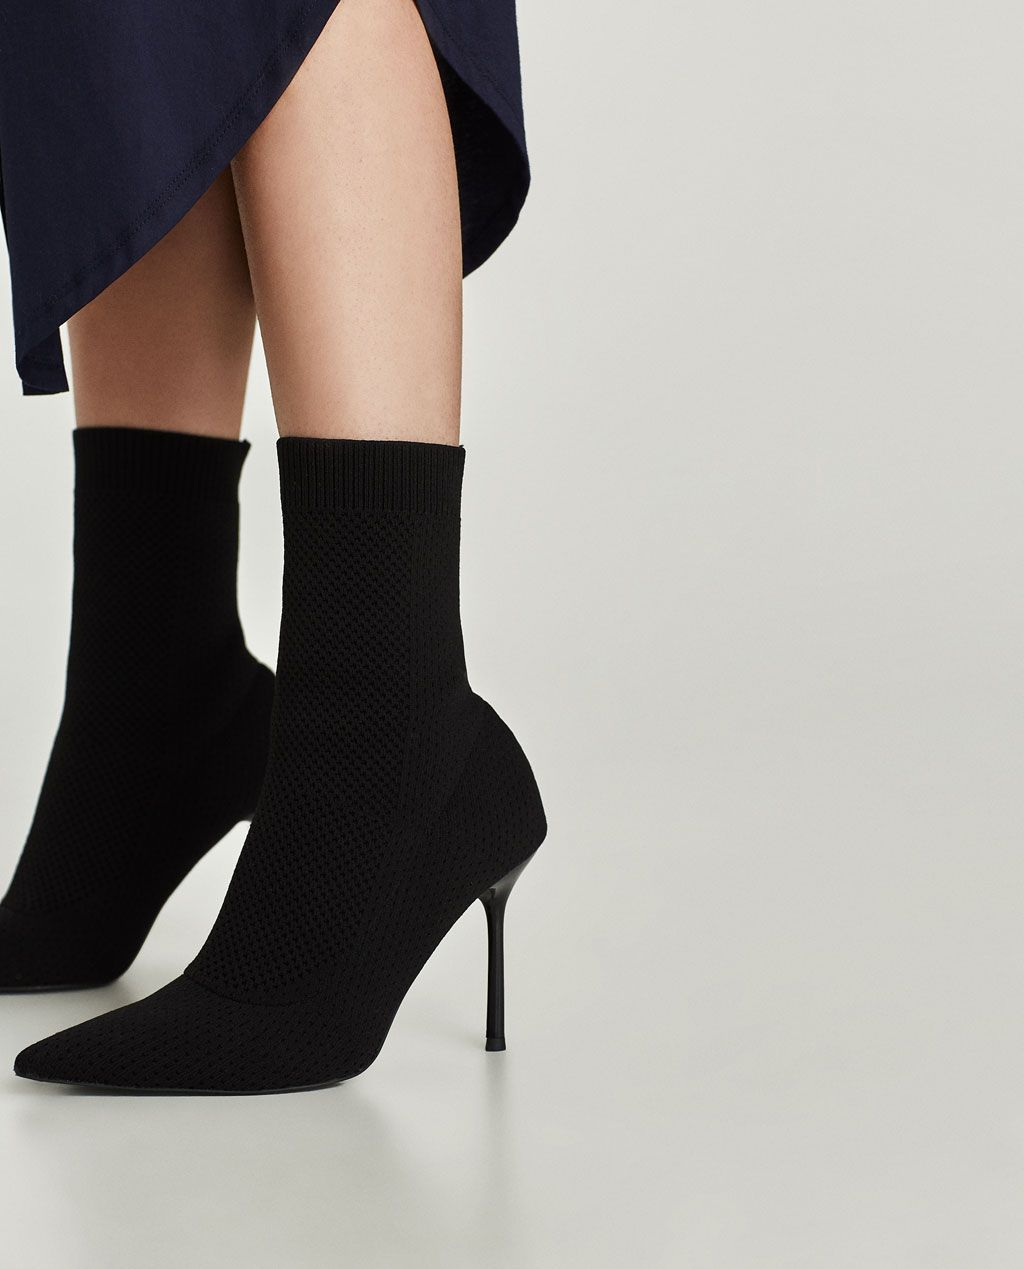 00adcaa5f93 STRETCH FABRIC HIGH HEEL ANKLE BOOTS-View all-SHOES-WOMAN   ZARA ...